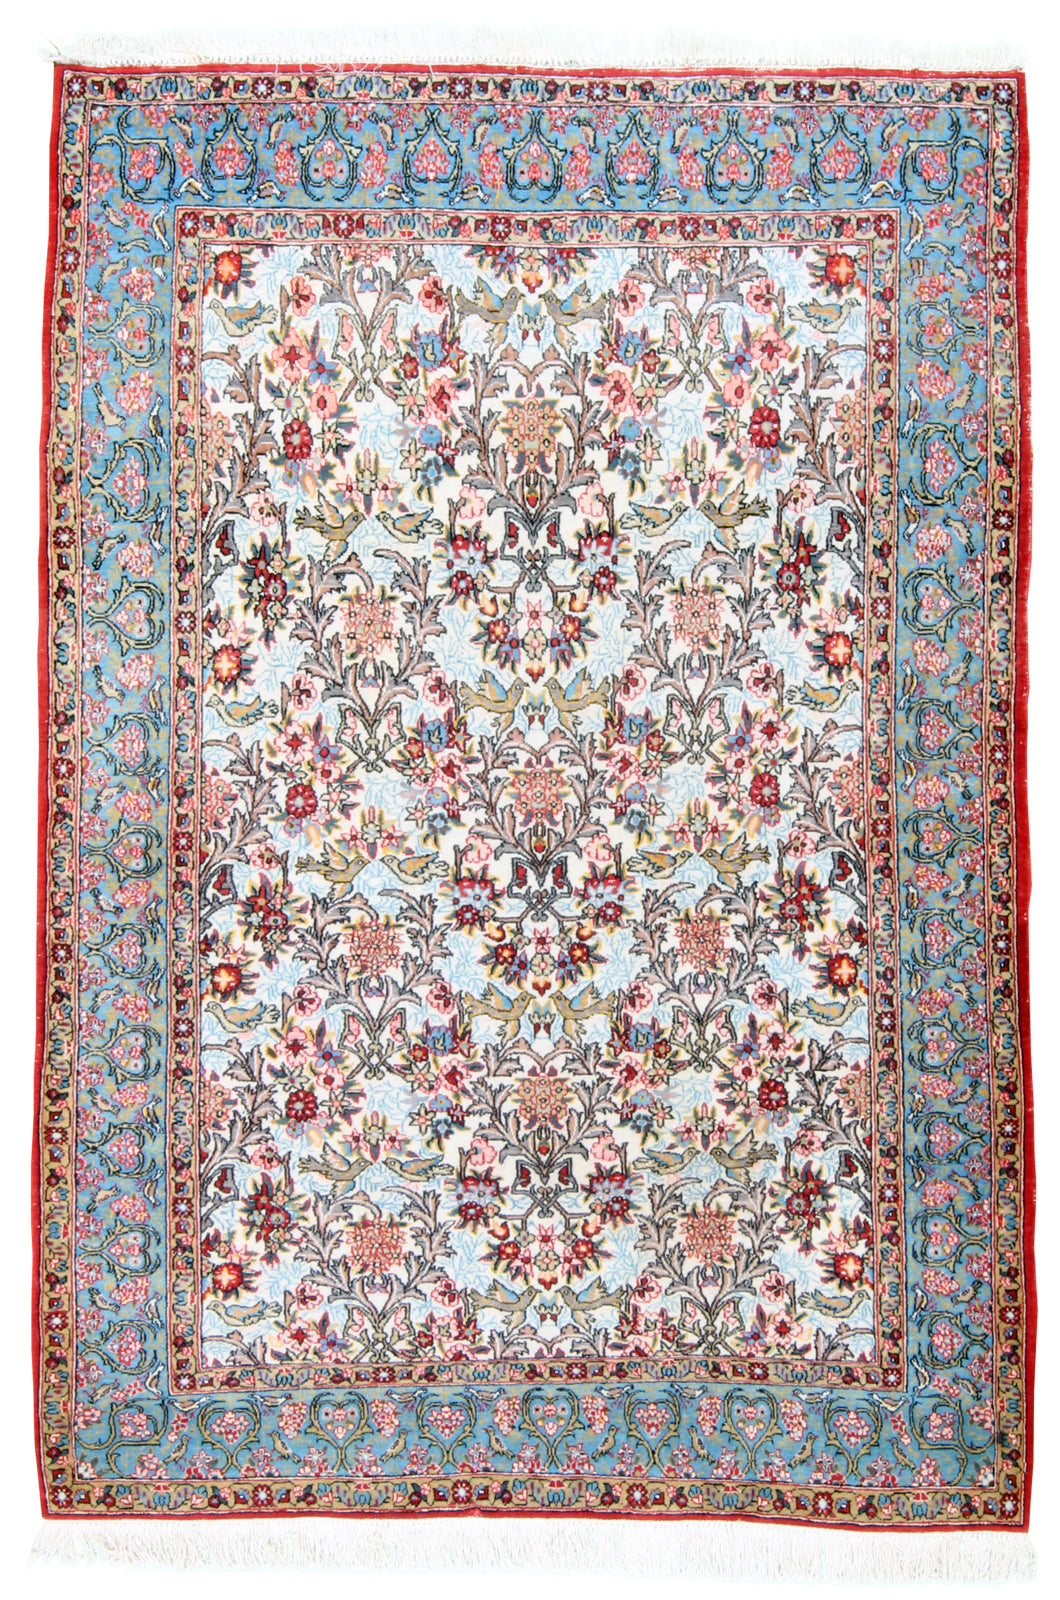 Semi-Antique Qum-Turco Persian Rug Company Inc.